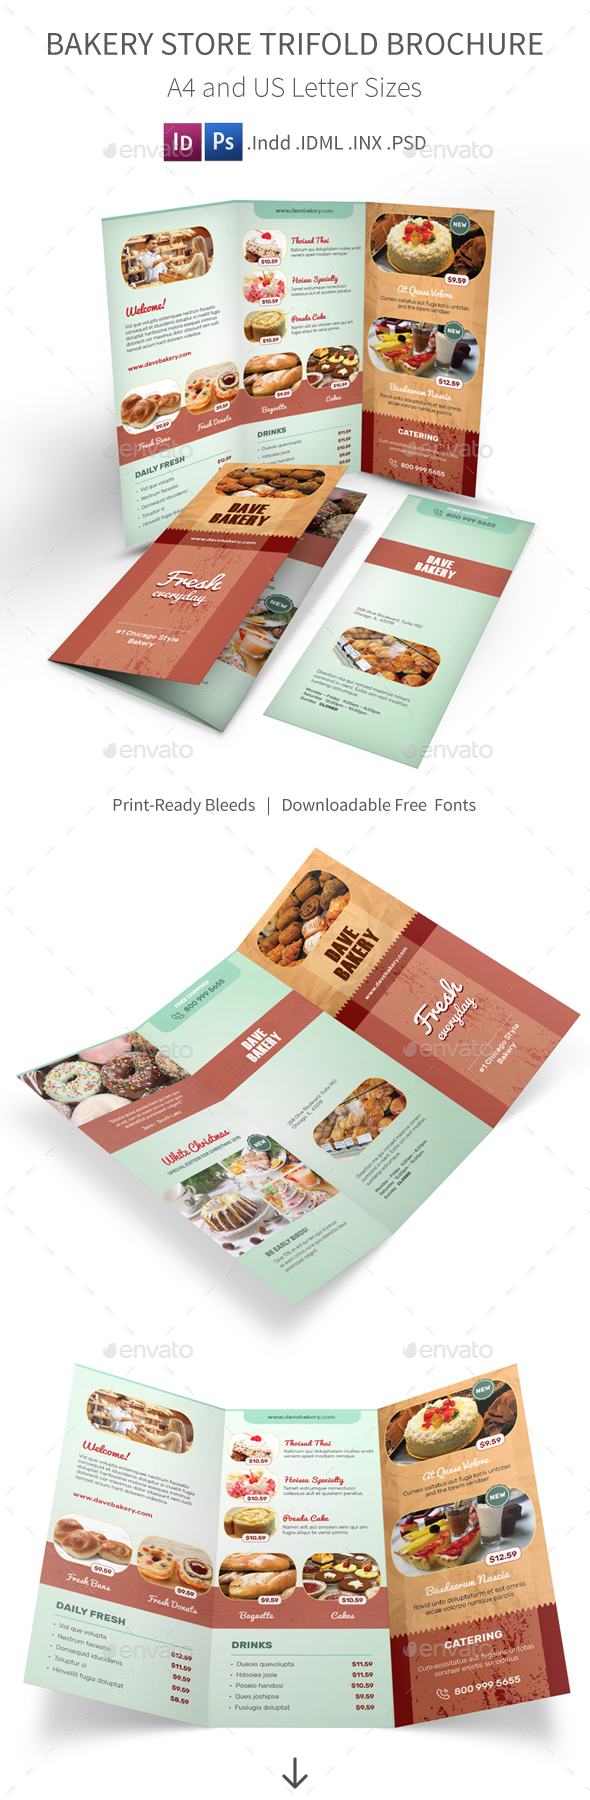 Bakery store trifold brochure by mike pantone graphicriver for Bakery brochure template free